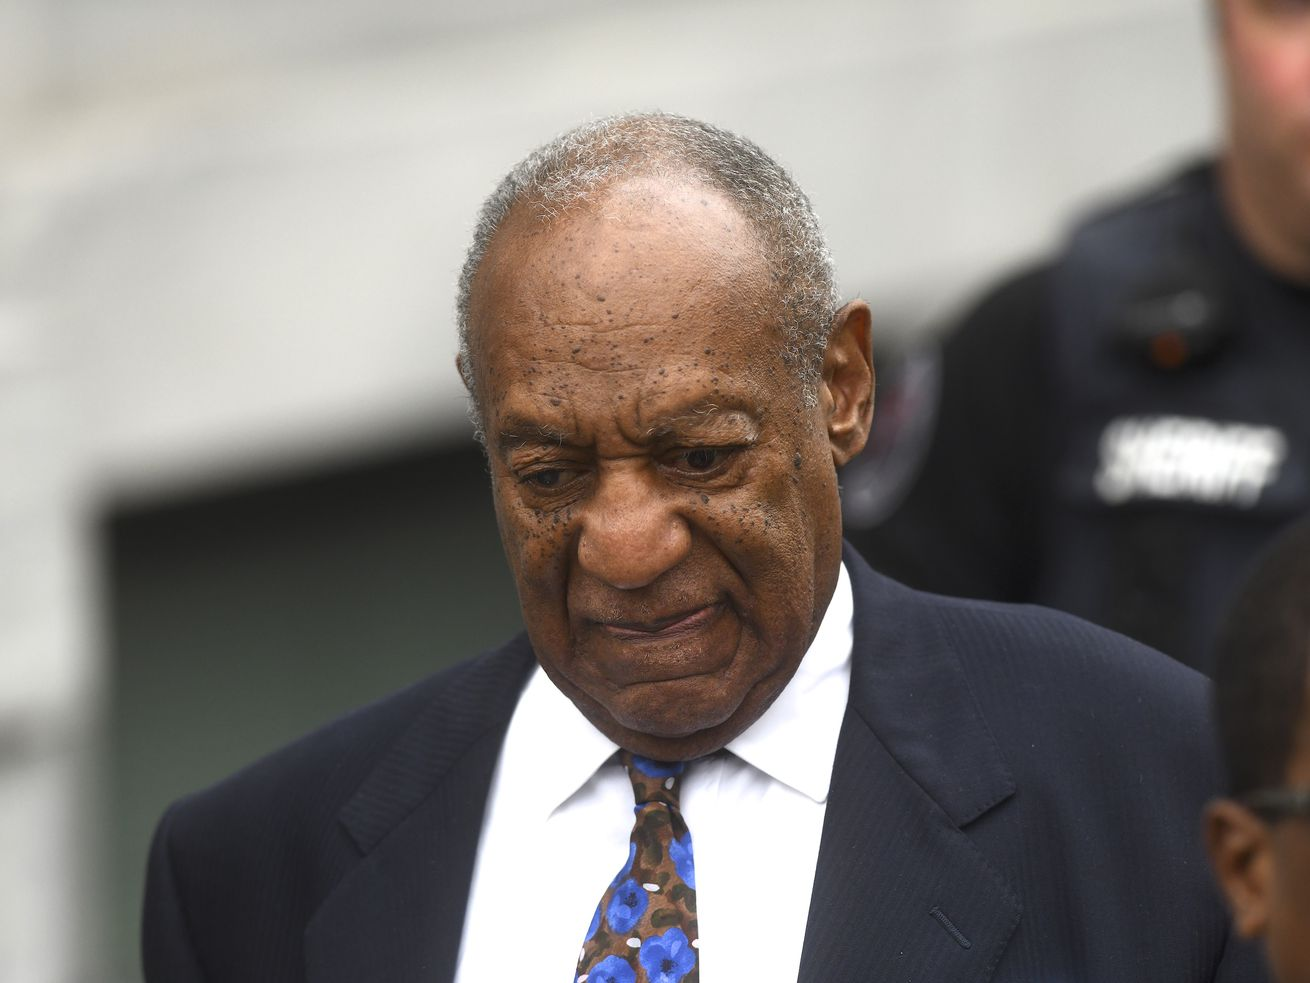 Bill Cosby leaves the Montgomery County Courthouse in Norristown, Pennsylvania, on September 24, 2018, the first day of his sentencing hearing.